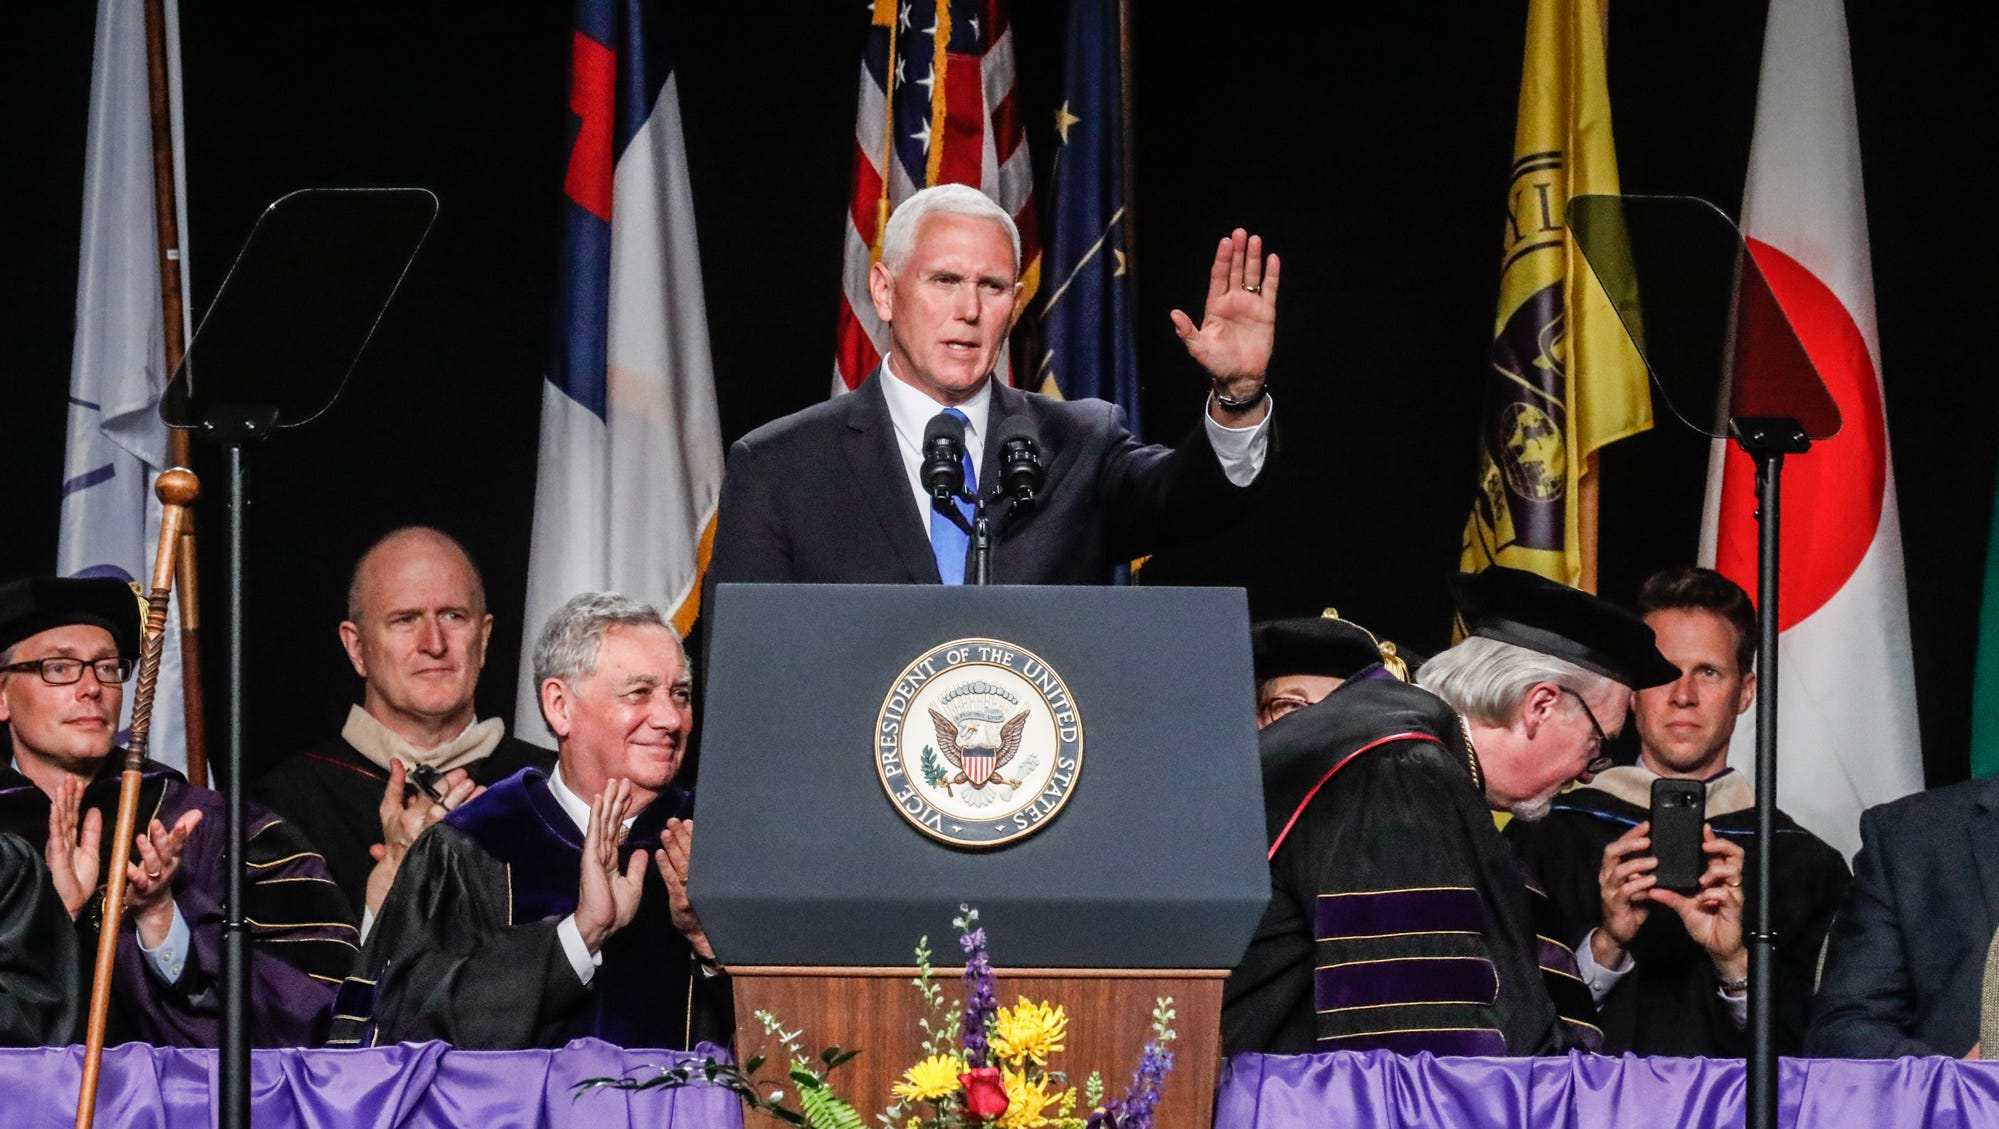 Vice President of the United States, Mike Pence, gives the commencement address during the Taylor University commencement ceremony, held inside Odle Arena, in Upland Ind. on Saturday, May 18, 2019.